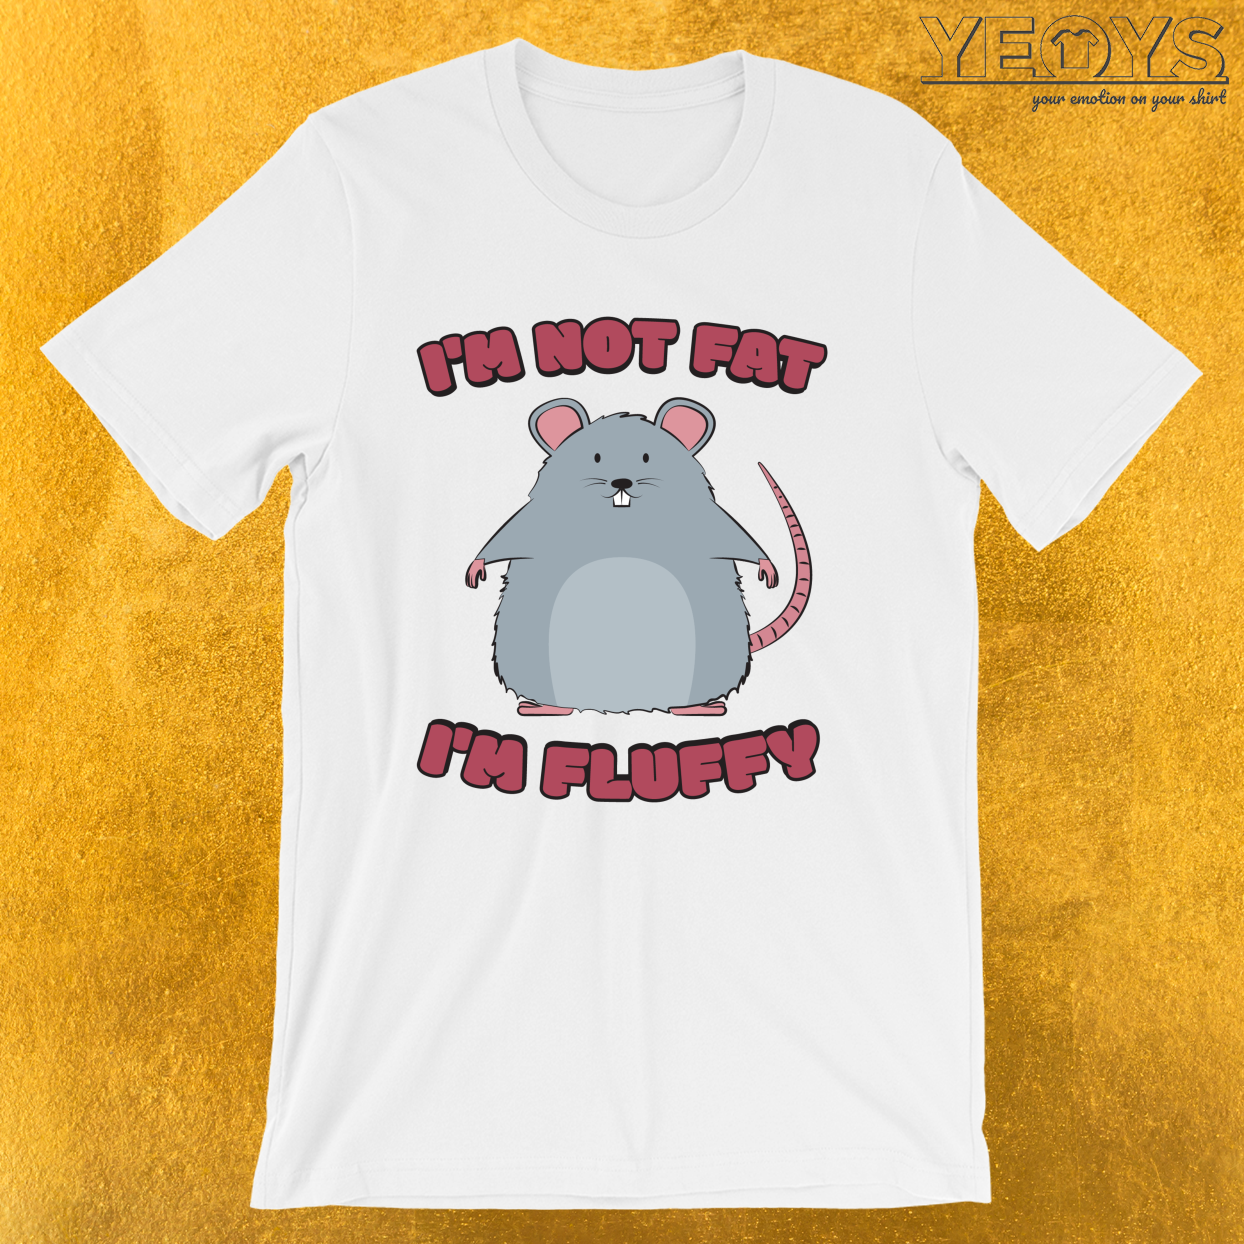 I'm Not Fat I'm Fluffy – Cute Fat Rat Tee